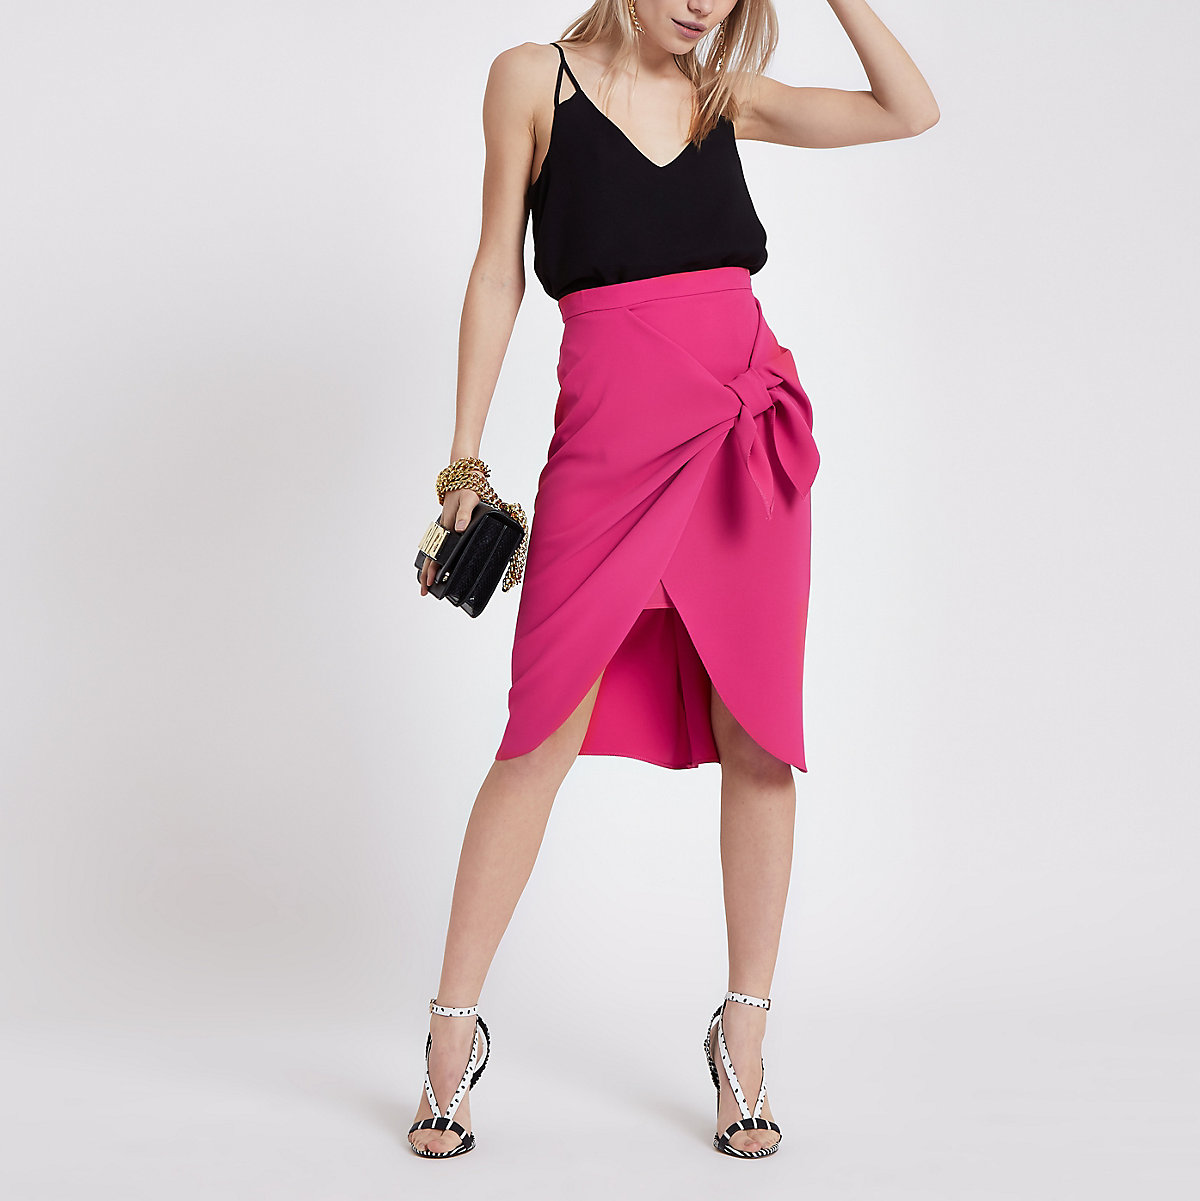 Petite pink tie front pencil skirt